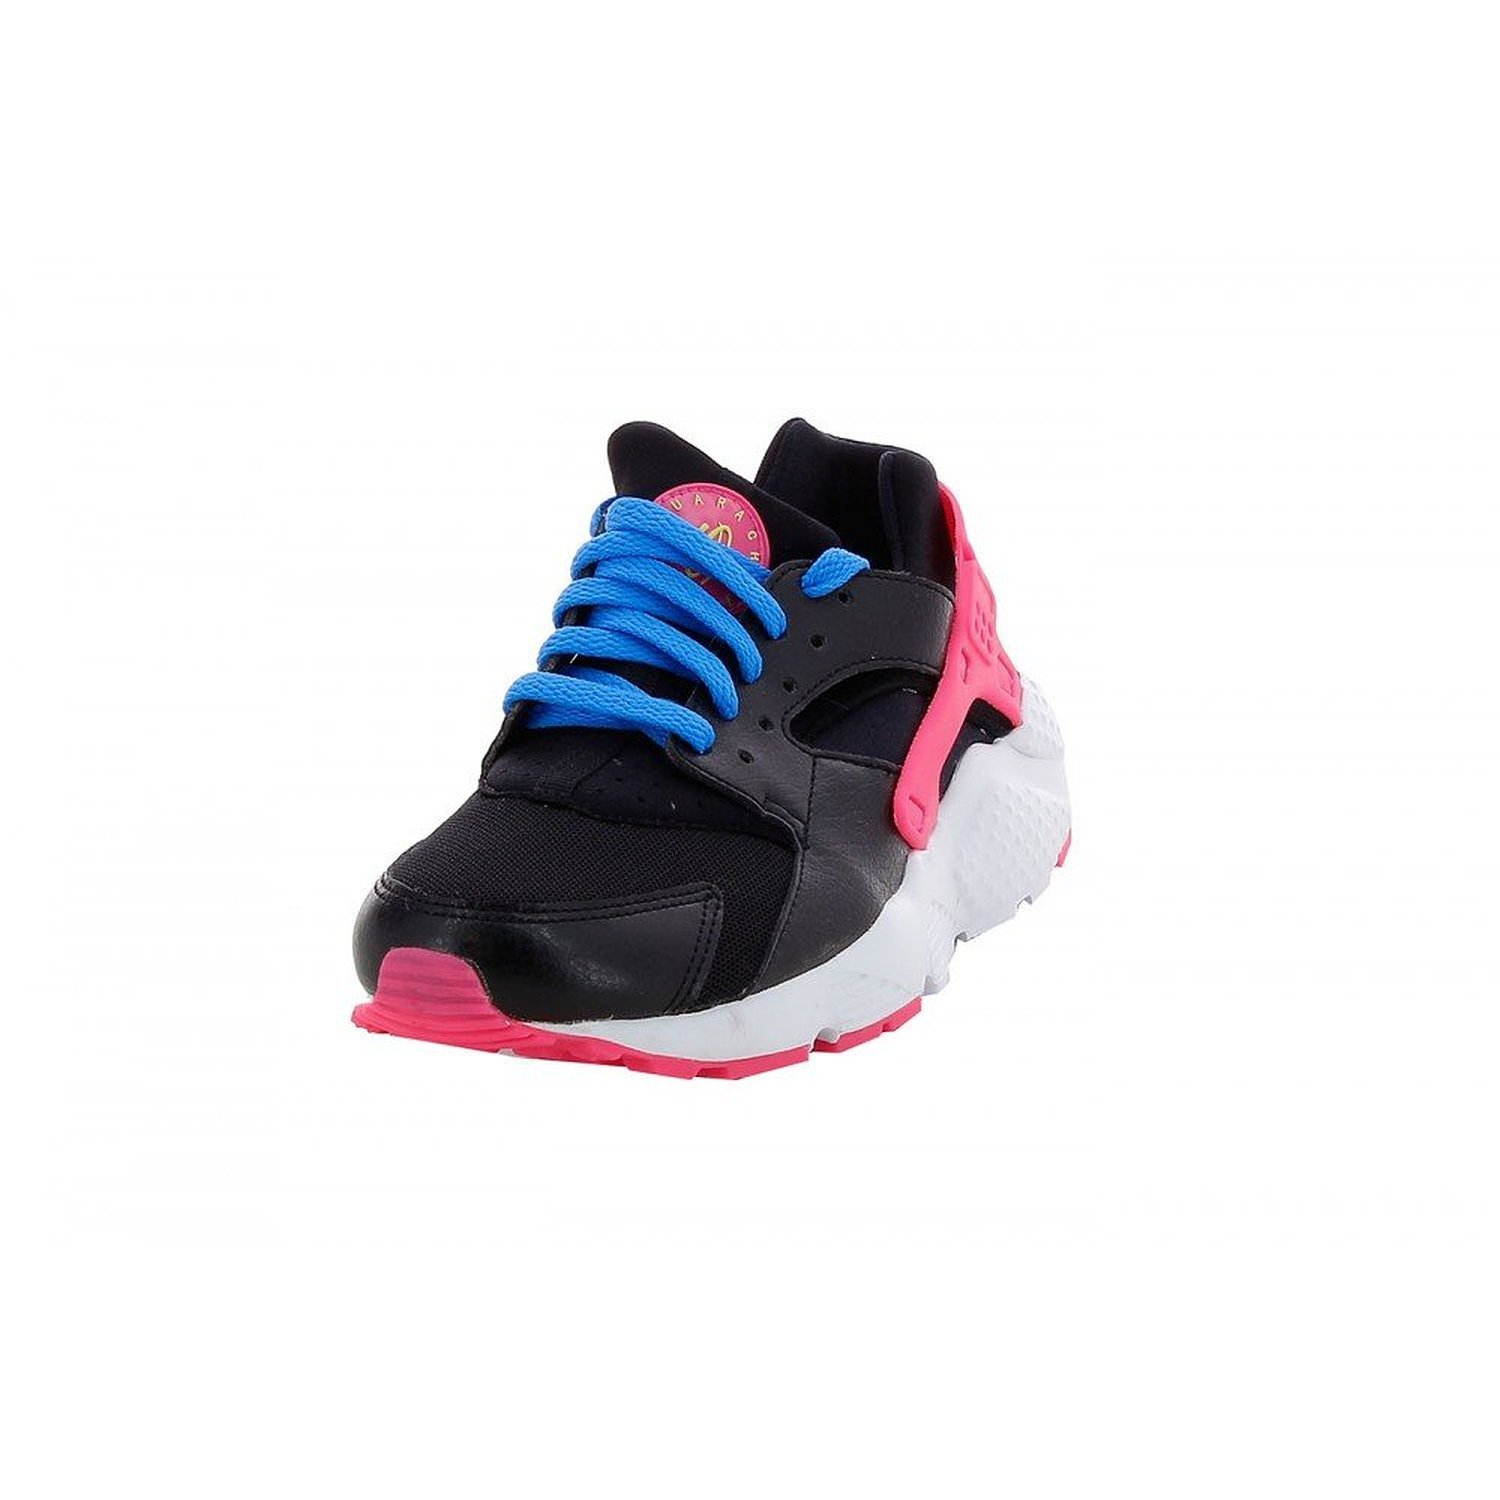 Nike Huarache Run (Gs) Youth Size 3.5y 654280 004